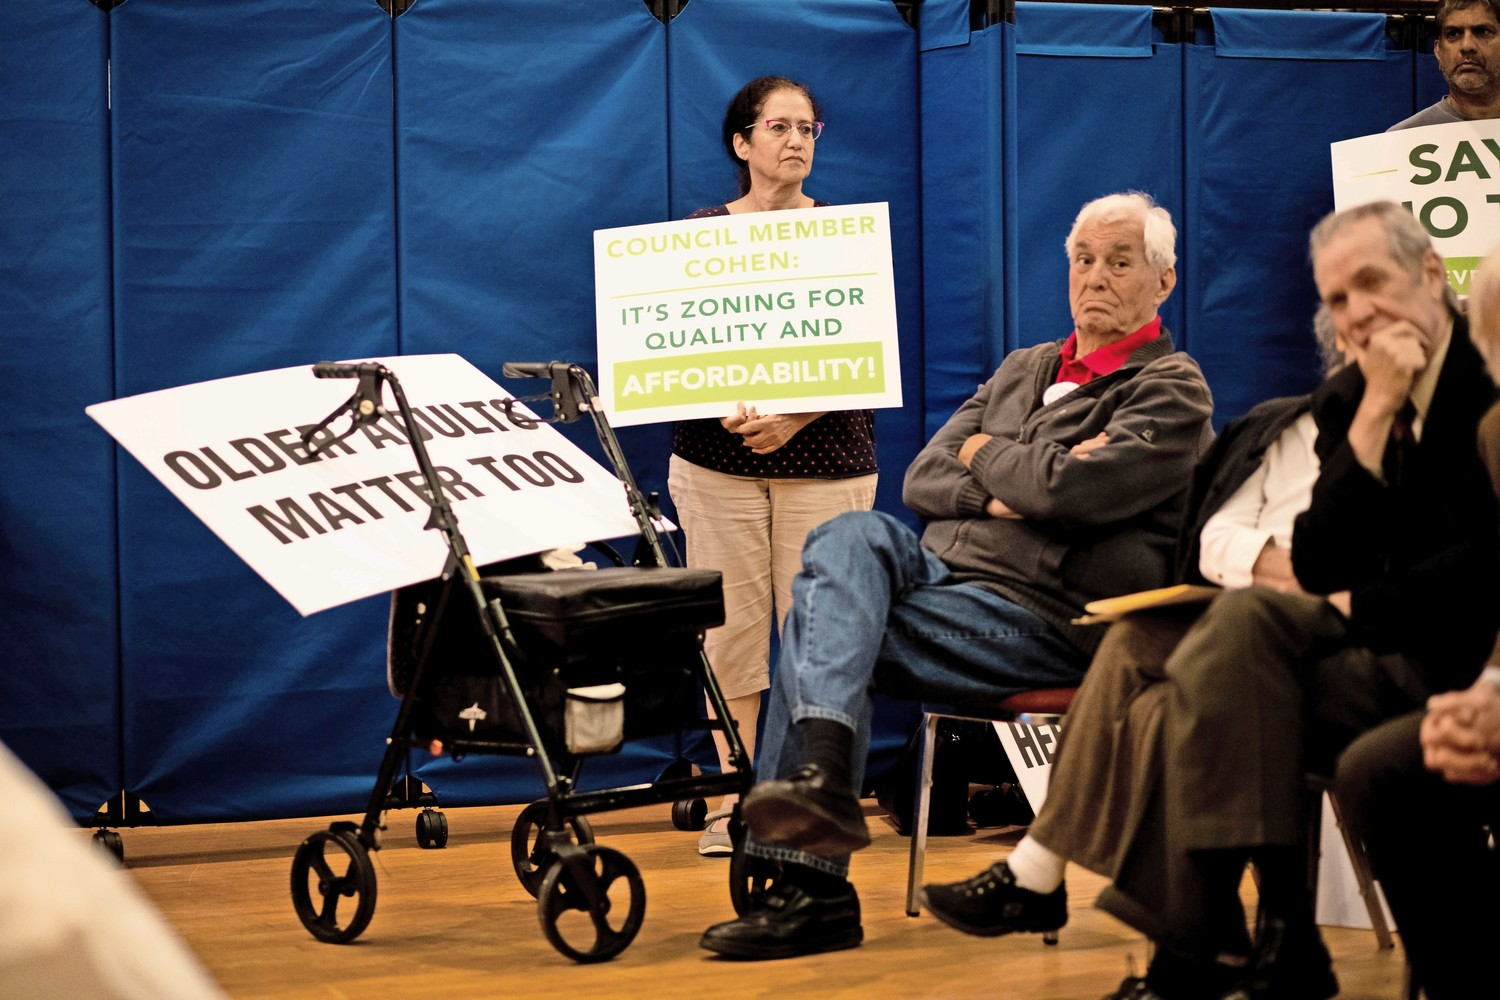 Supporters and opponents of the Hebrew Home at Riverdale's plans to build a continuing care retirement community attend a public comment session at the Riverdale Temple. CB8 had to pay $1,300 to host their four-hour meeting at the temple.